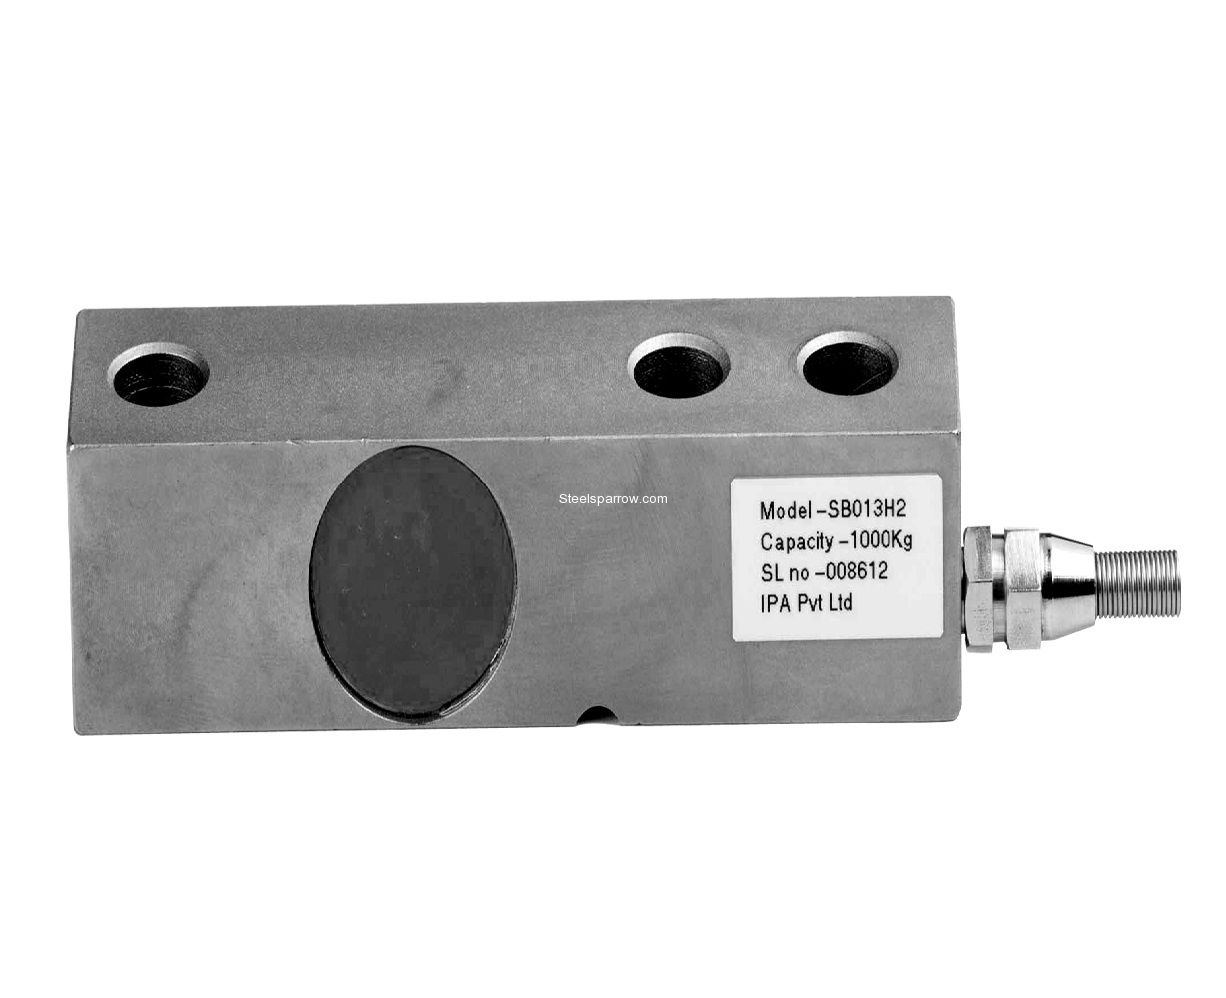 Compression Load Cell Rudrra Sensor Rs3 Manual Guide